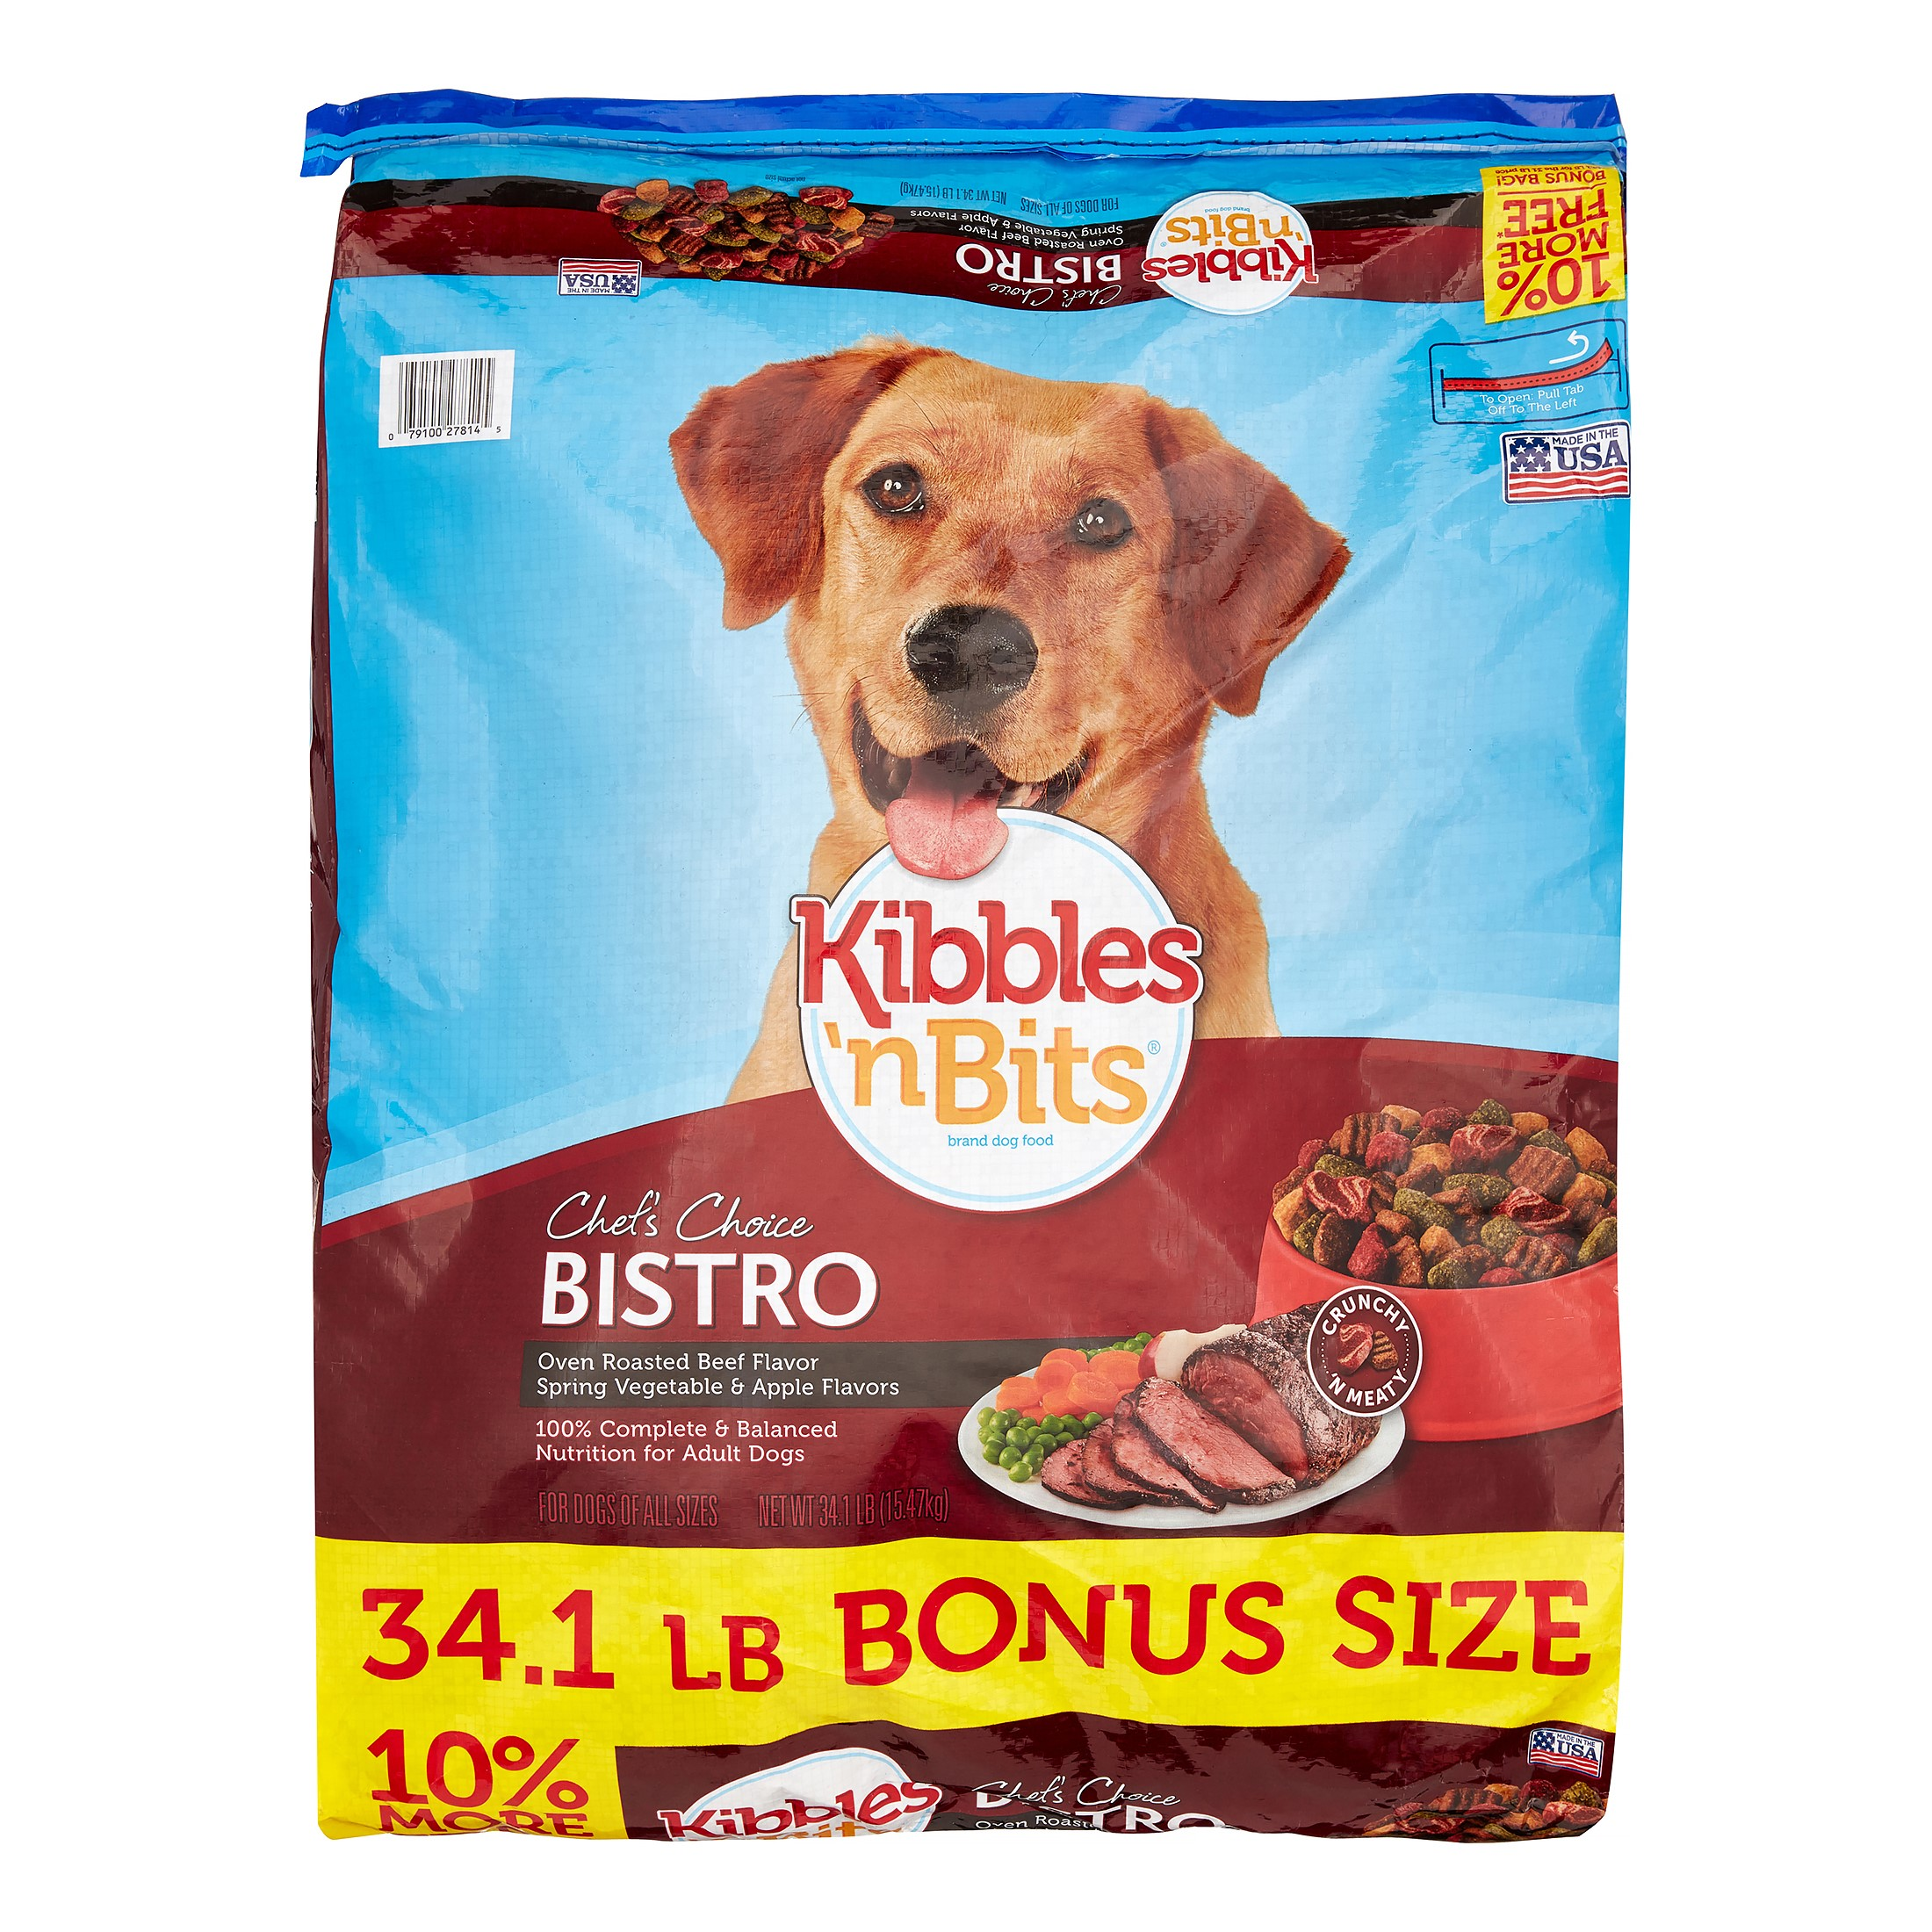 Kibbles 'n Bits Bistro Roasted Beef Flavor, Spring Vegetable & Apple Bonus Bag Dry Dog Food, 34.1 Lb